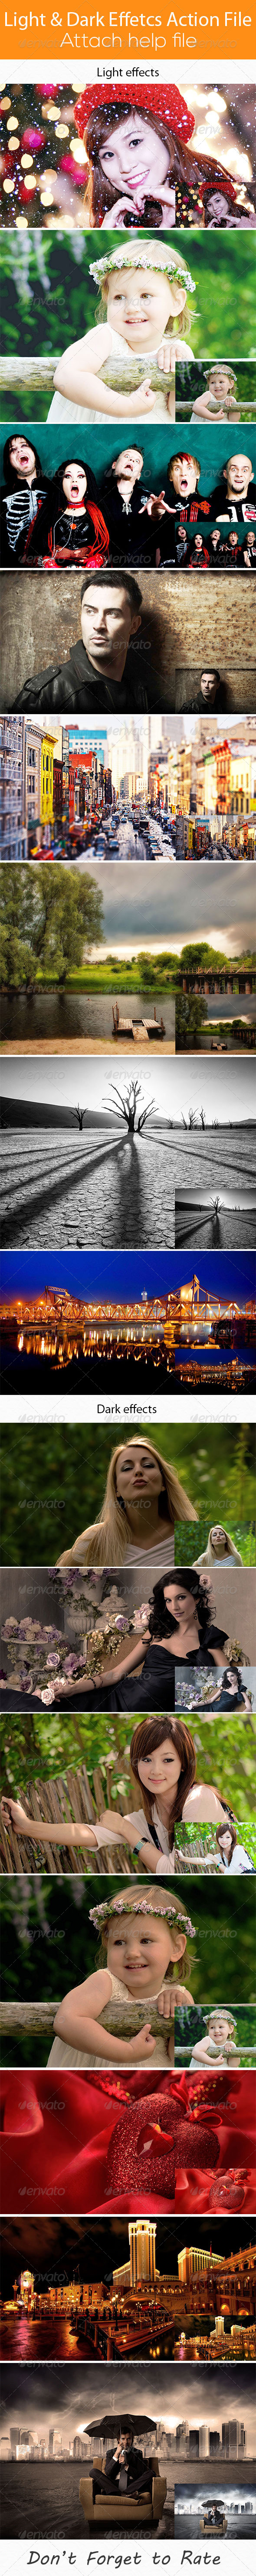 GraphicRiver Light & Dark Photo Action 6871409